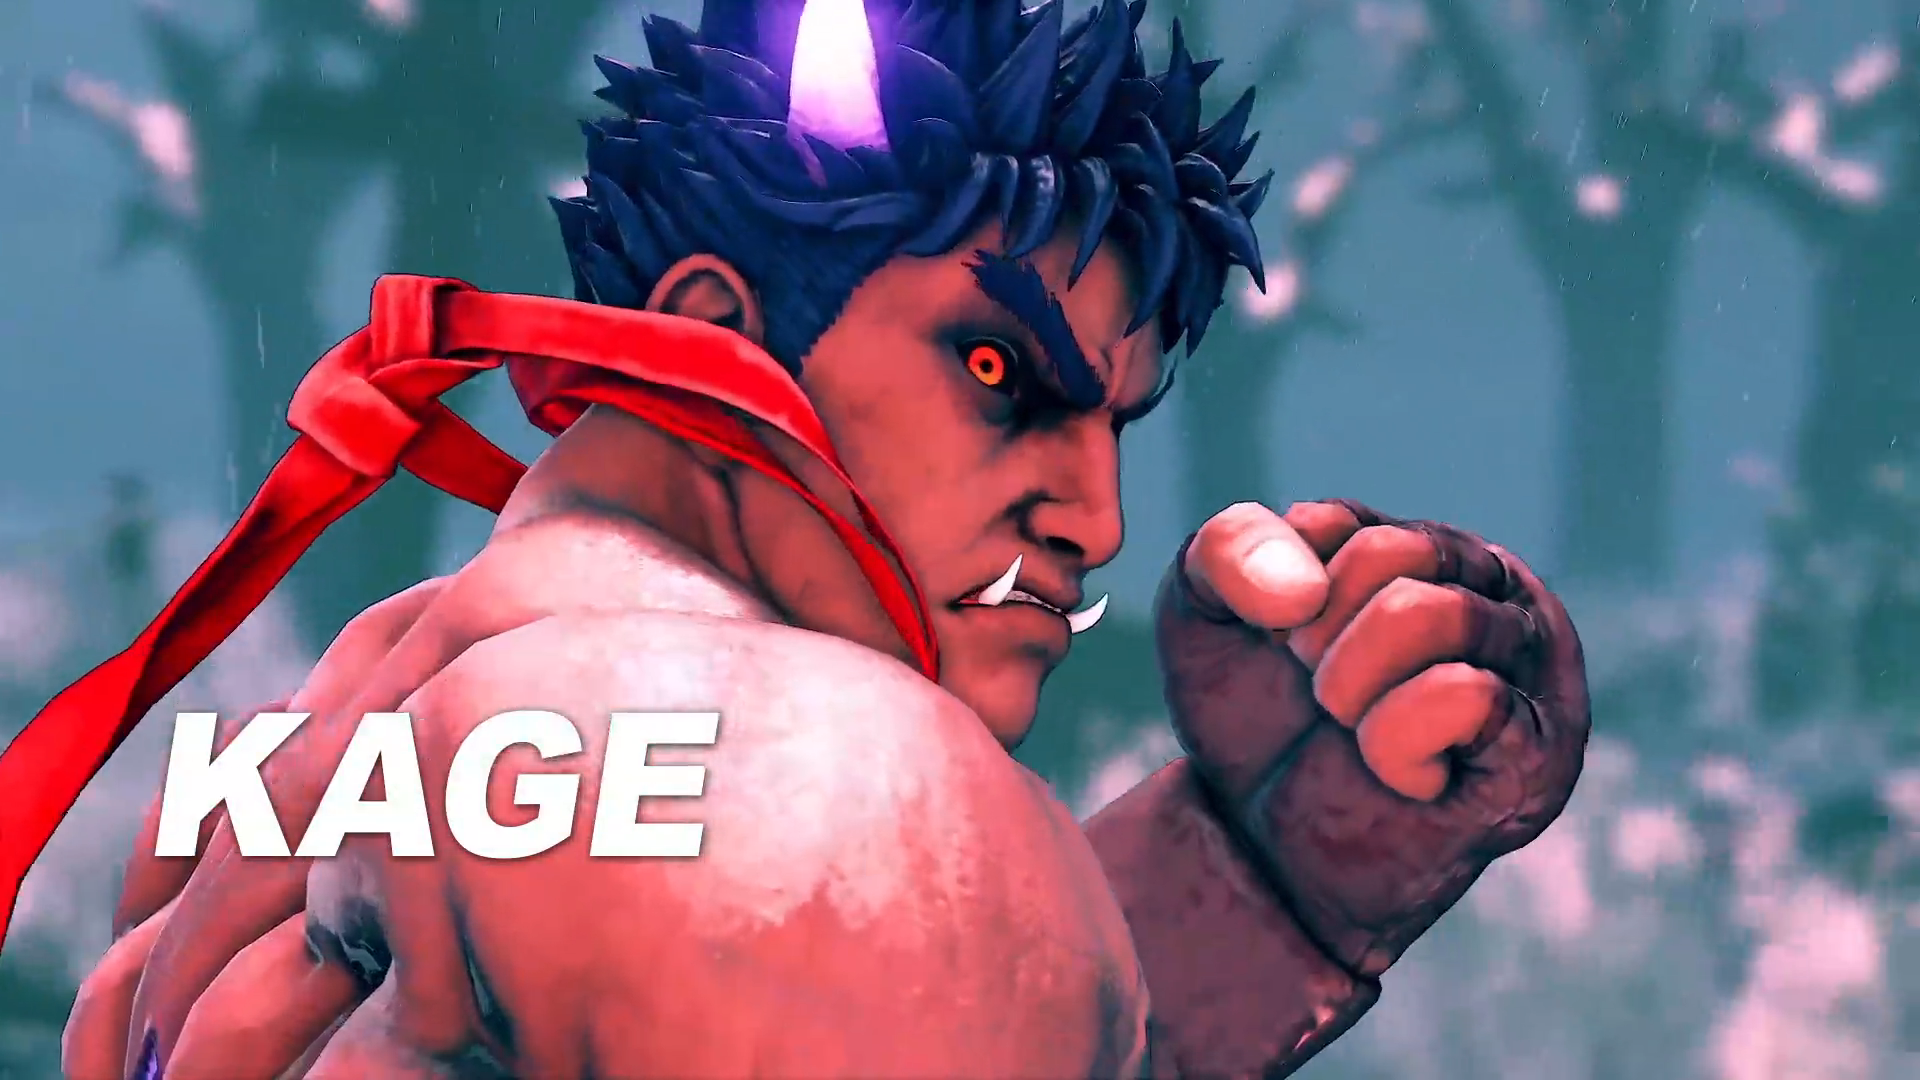 Street Fighter V Beginning Of Season 4 And New Character Kage